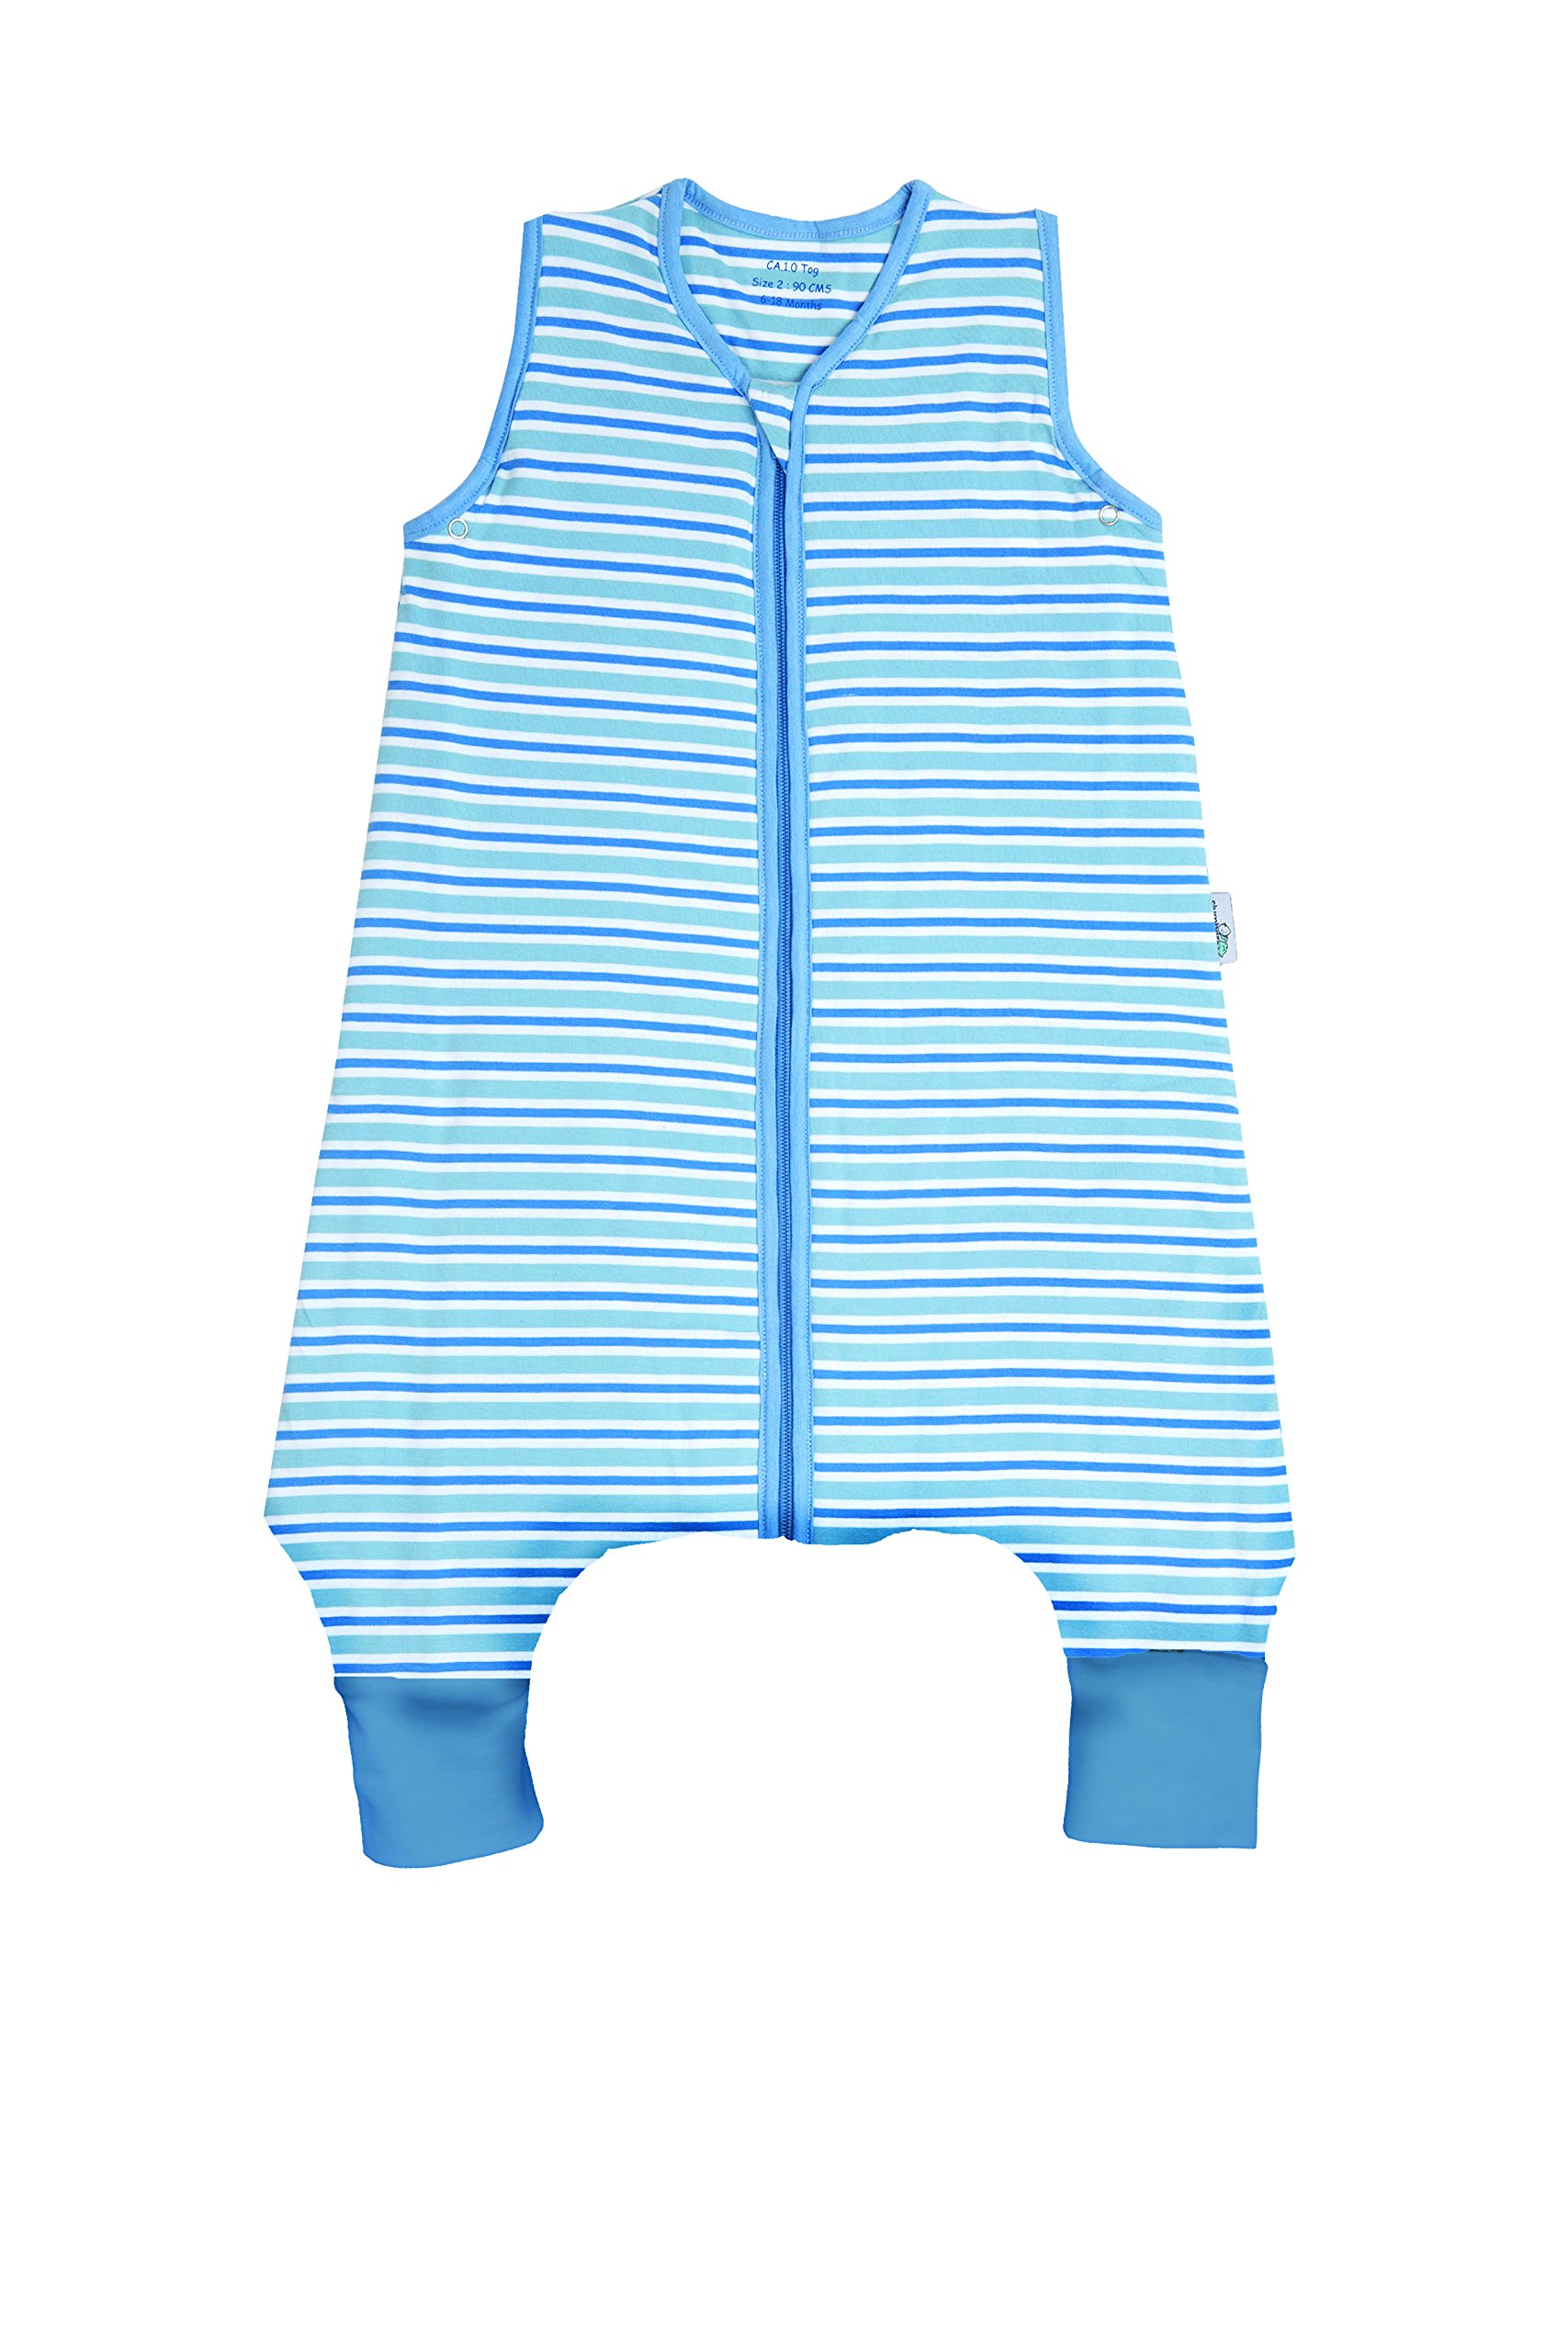 SlumberSafe Summer Sleeping Bag with Feet Early Walker 0.5 Tog, Blue Stripes, 18-24 Months